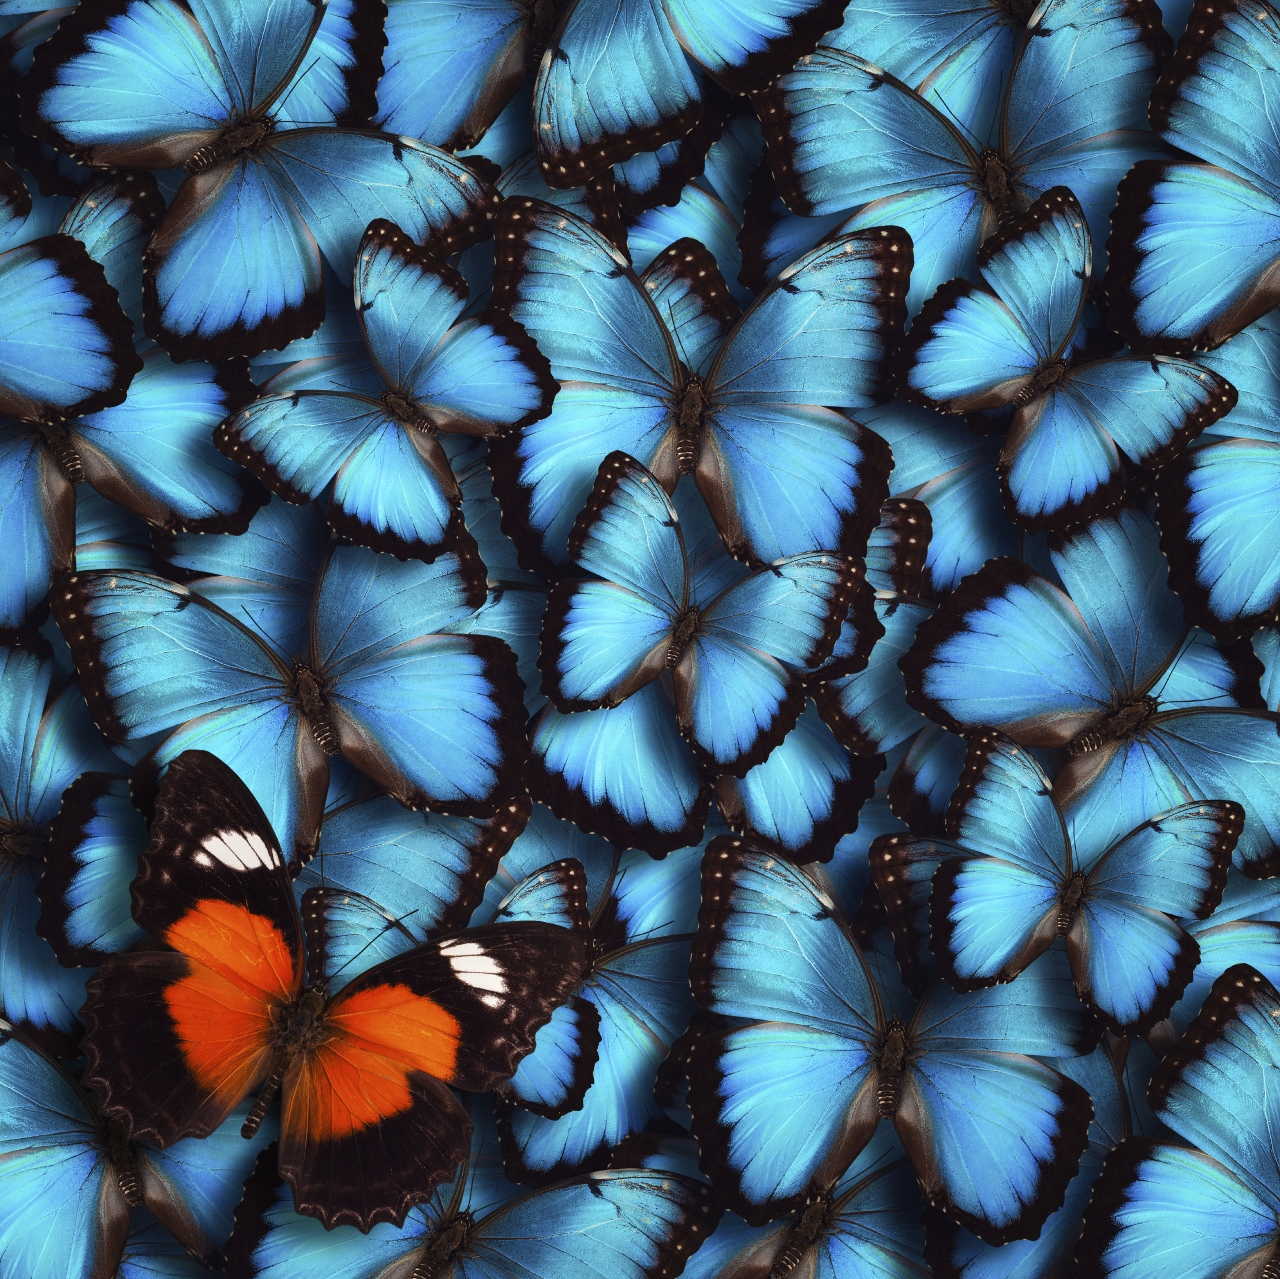 x ray snapshot of butterfly wings reveals underlying physics of color